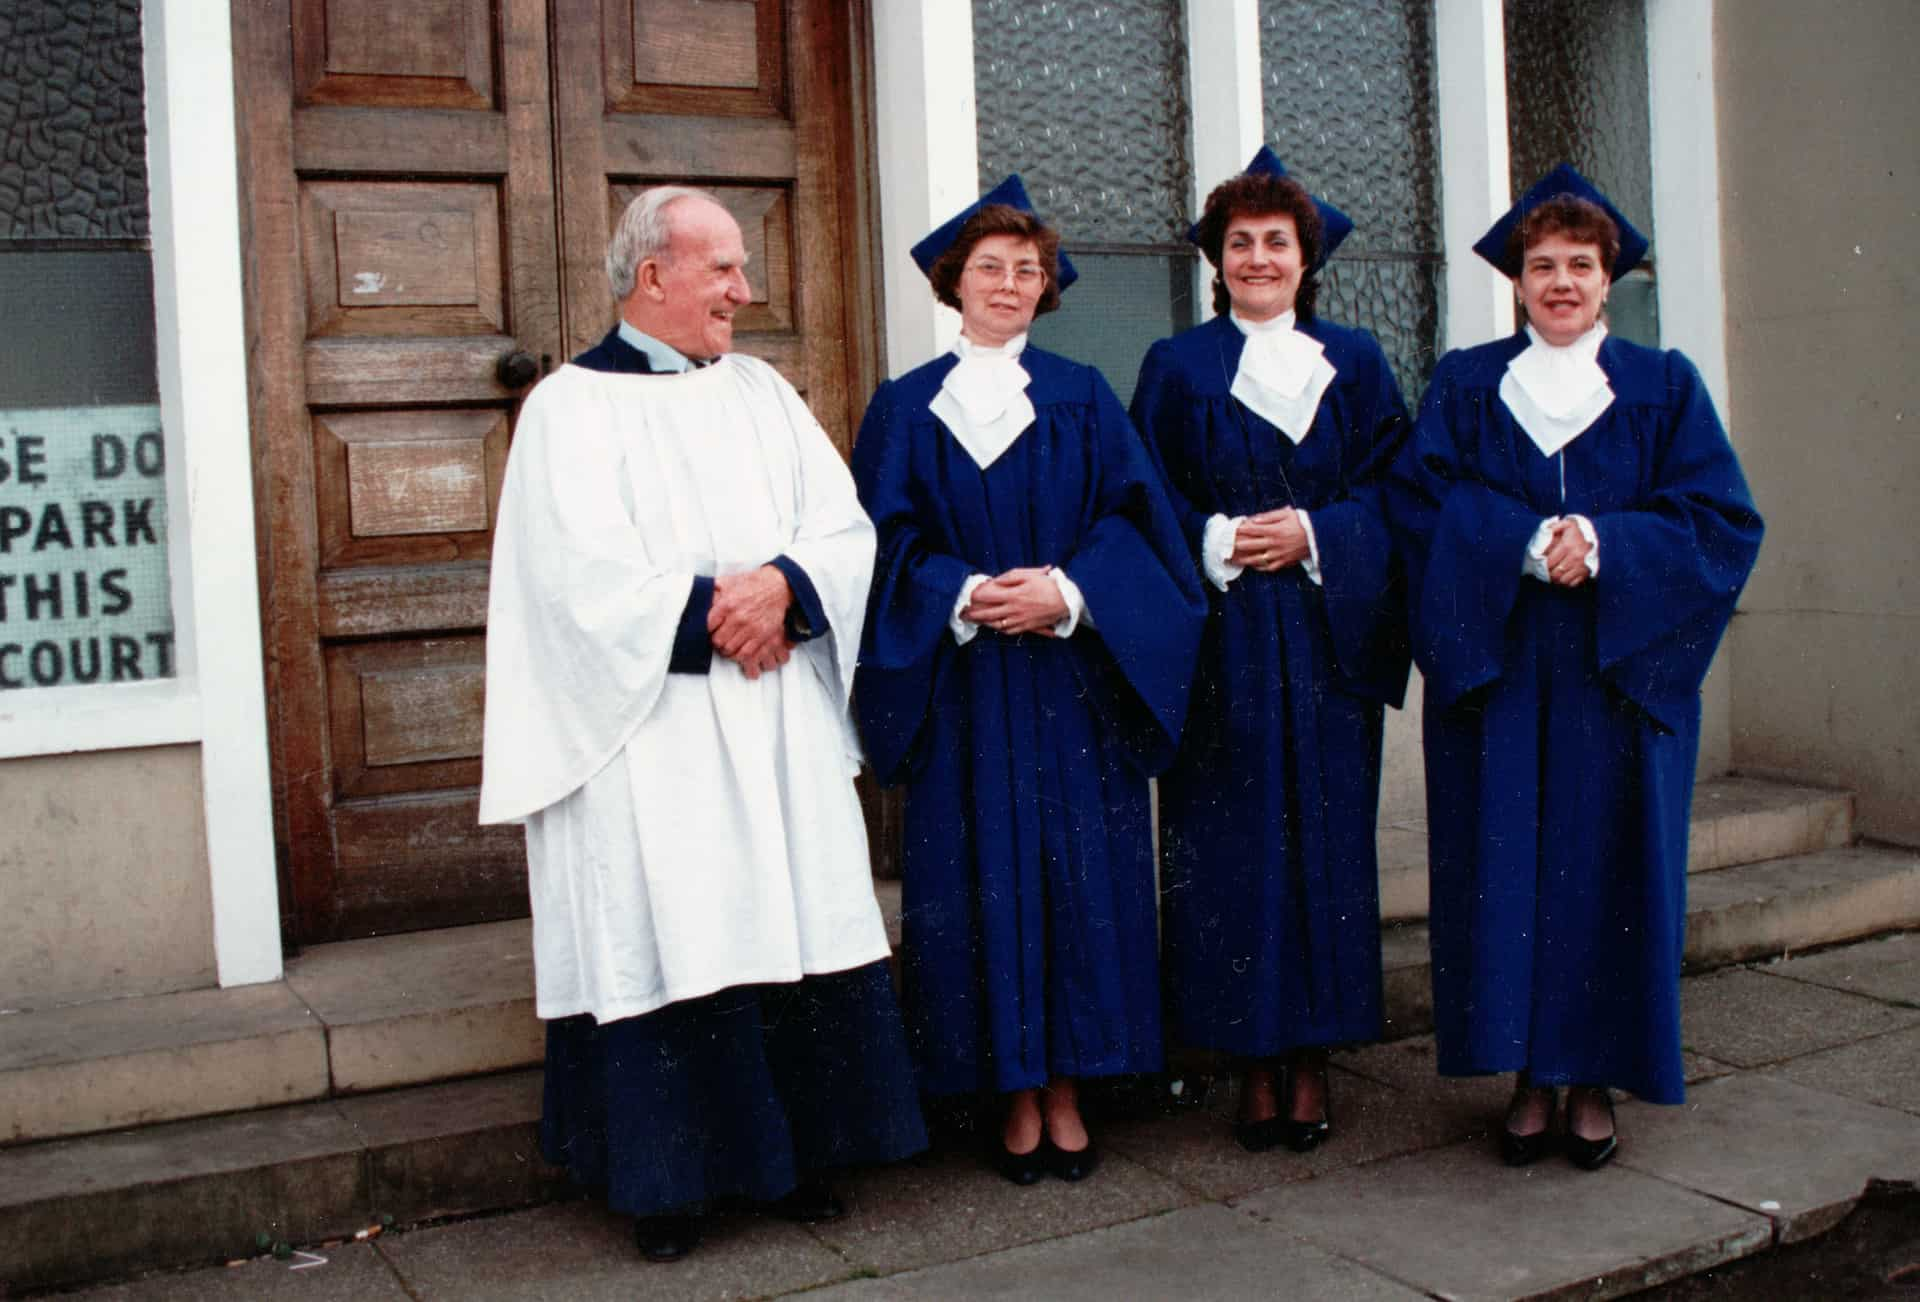 This is me outside church, and we are wearing our choir robes, we don't have a choir now as we don't have an organist come and play.